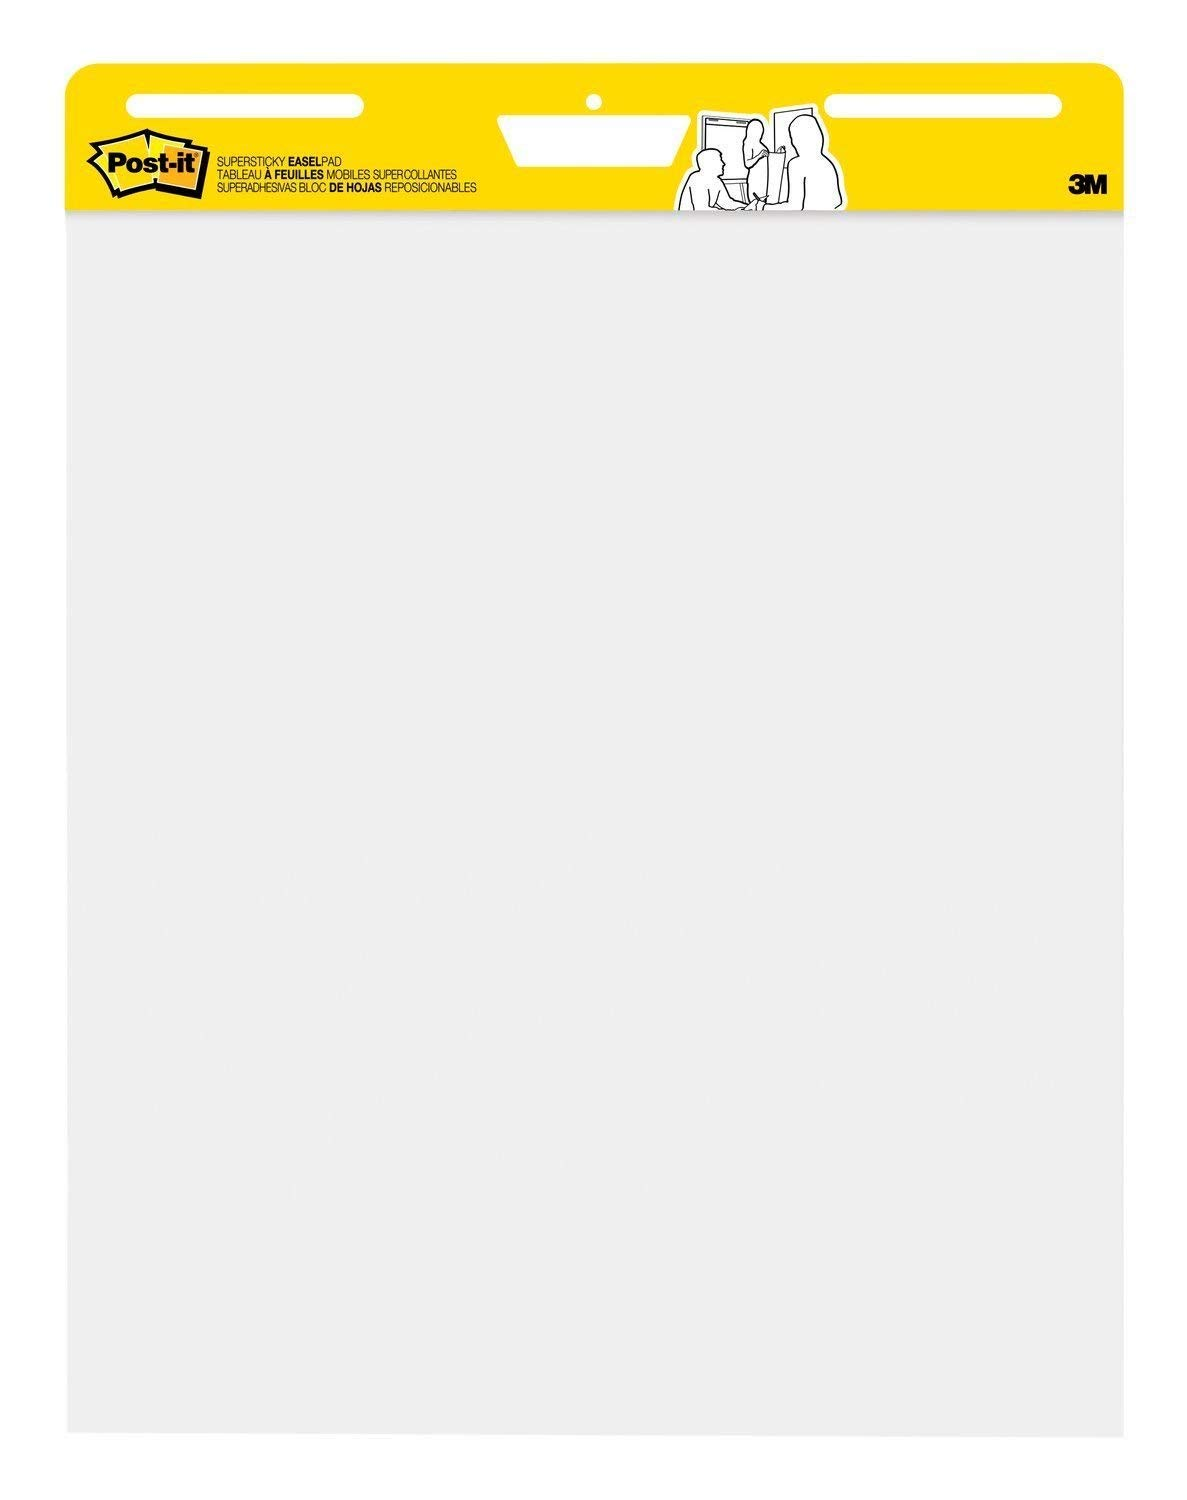 Post-it Super Sticky Easel Pad, 25 x 30 Inches, 30 Sheets/Pad, Large White Premium Self Stick Flip Chart Paper 8D5Y, Super Sticking Power, 10-Pads by Post-it